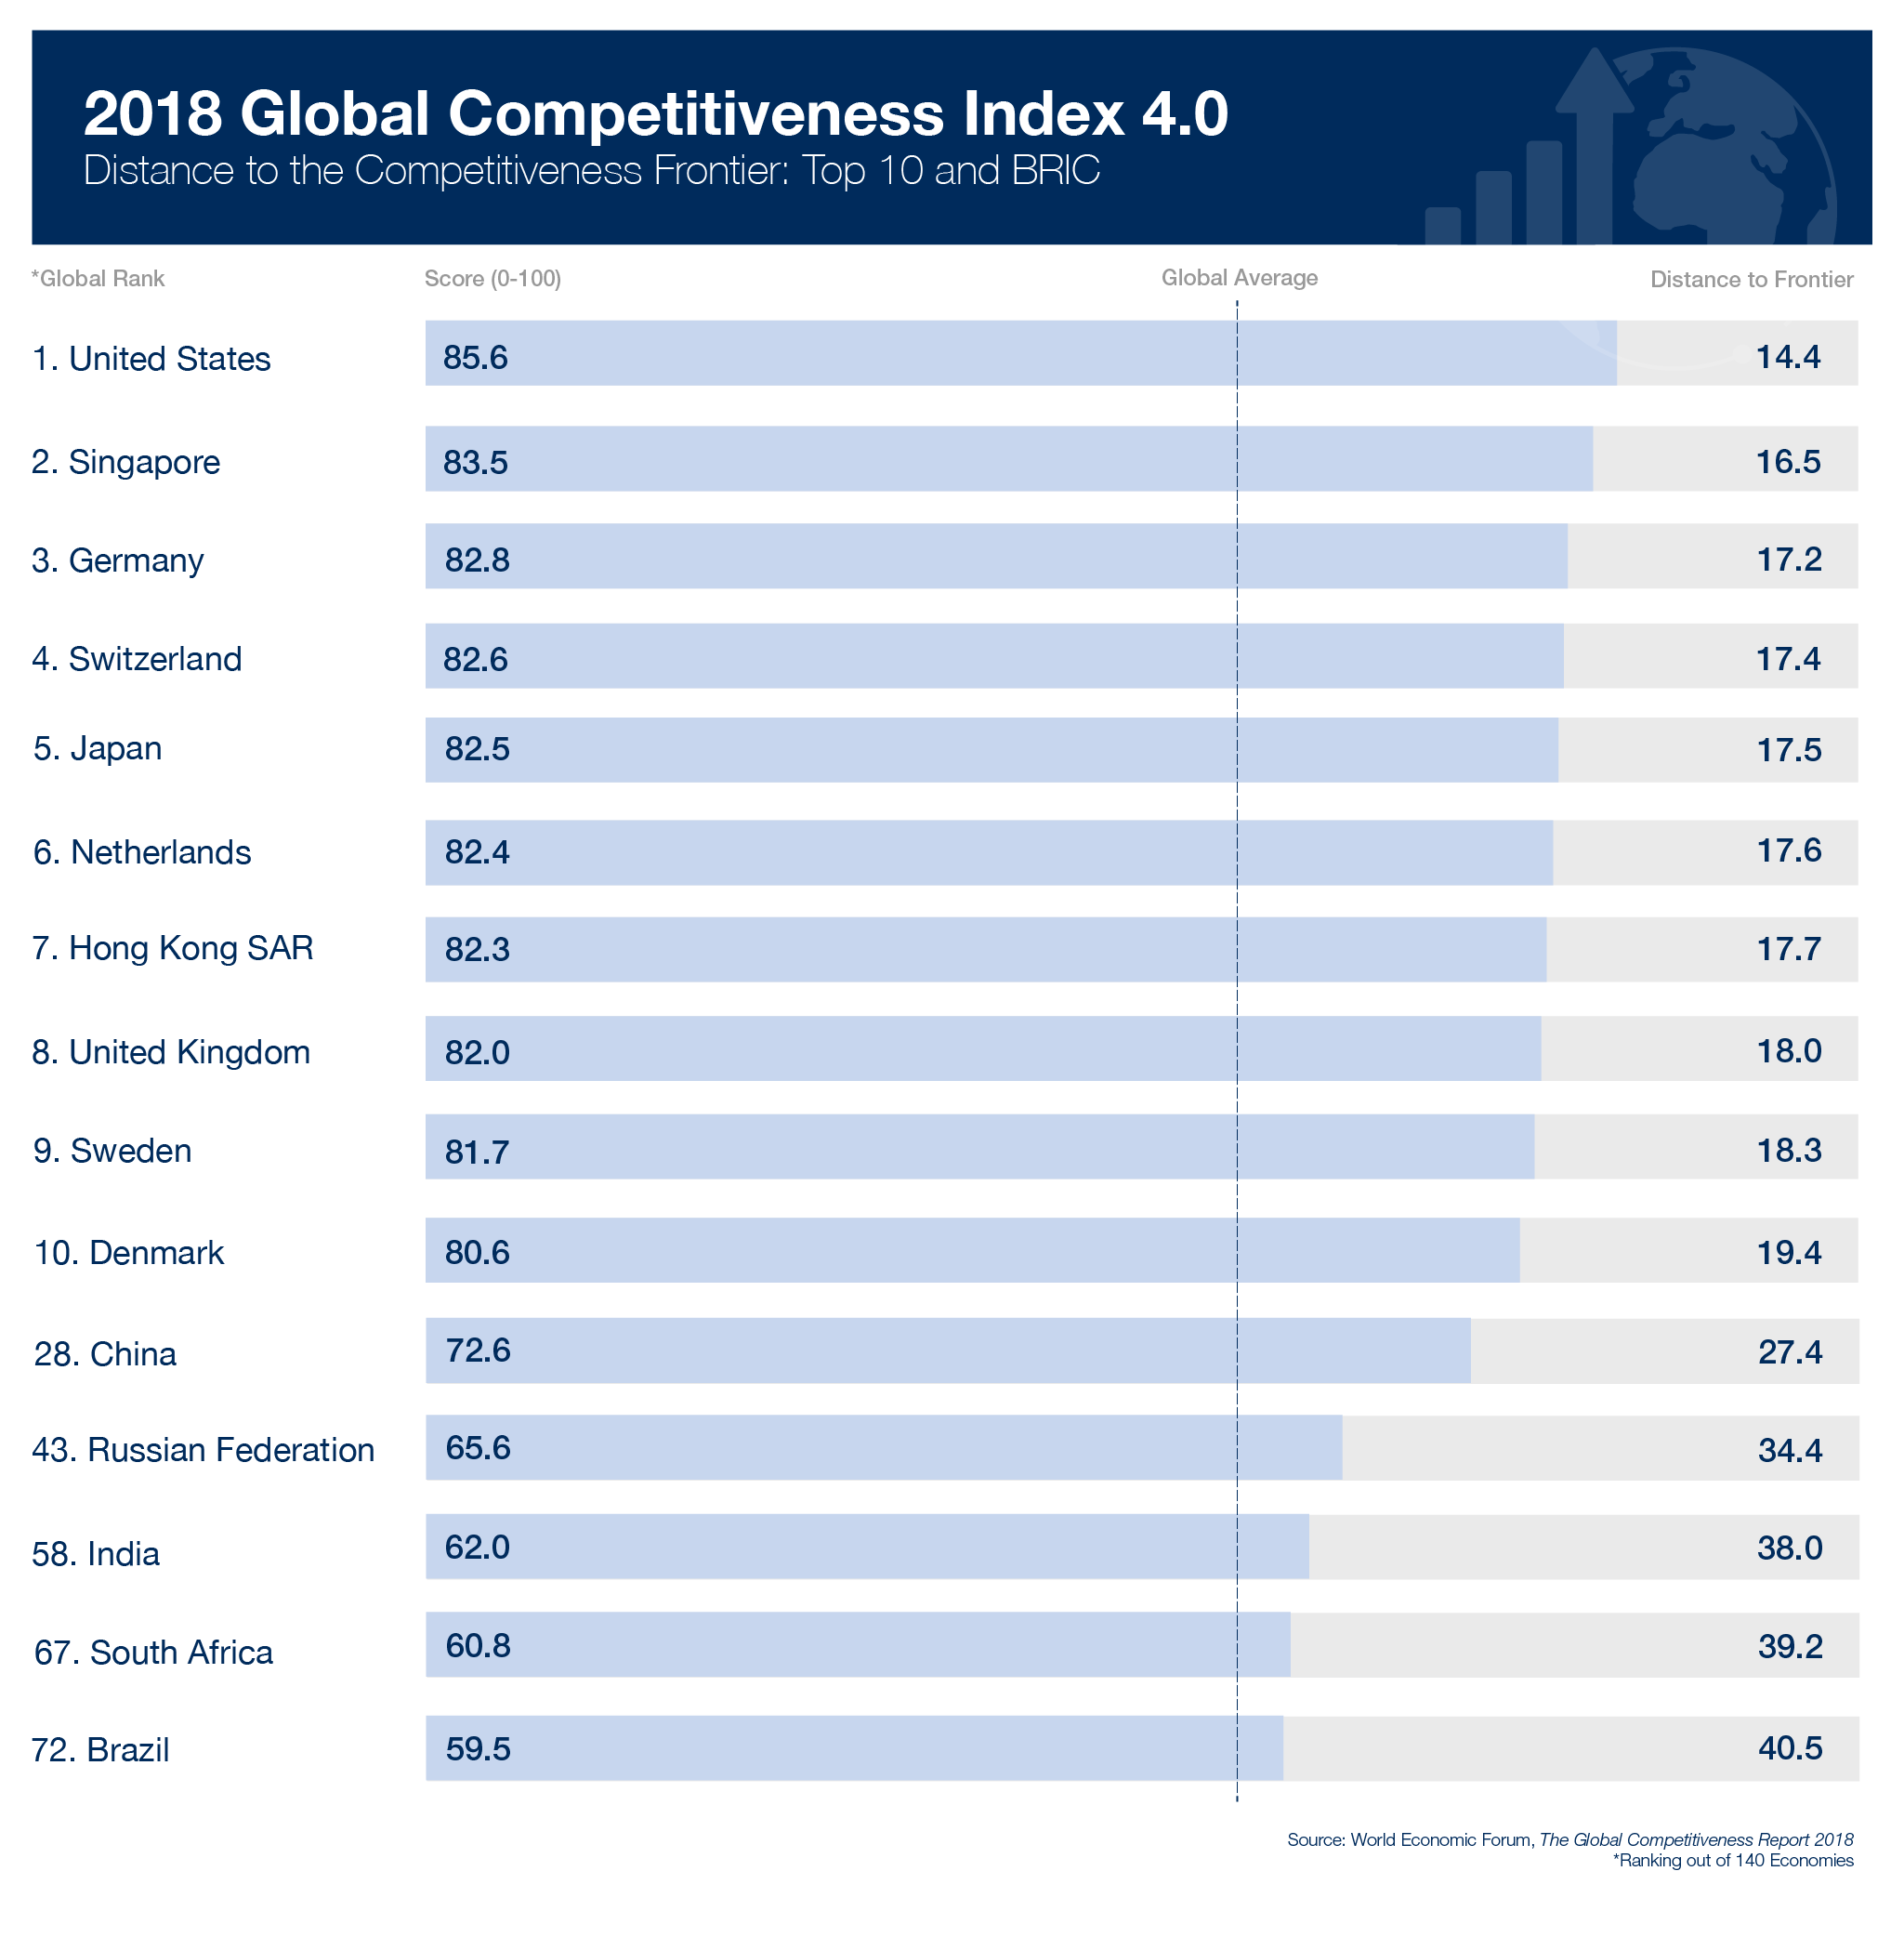 2018 Global Competitiveness Index 4.0